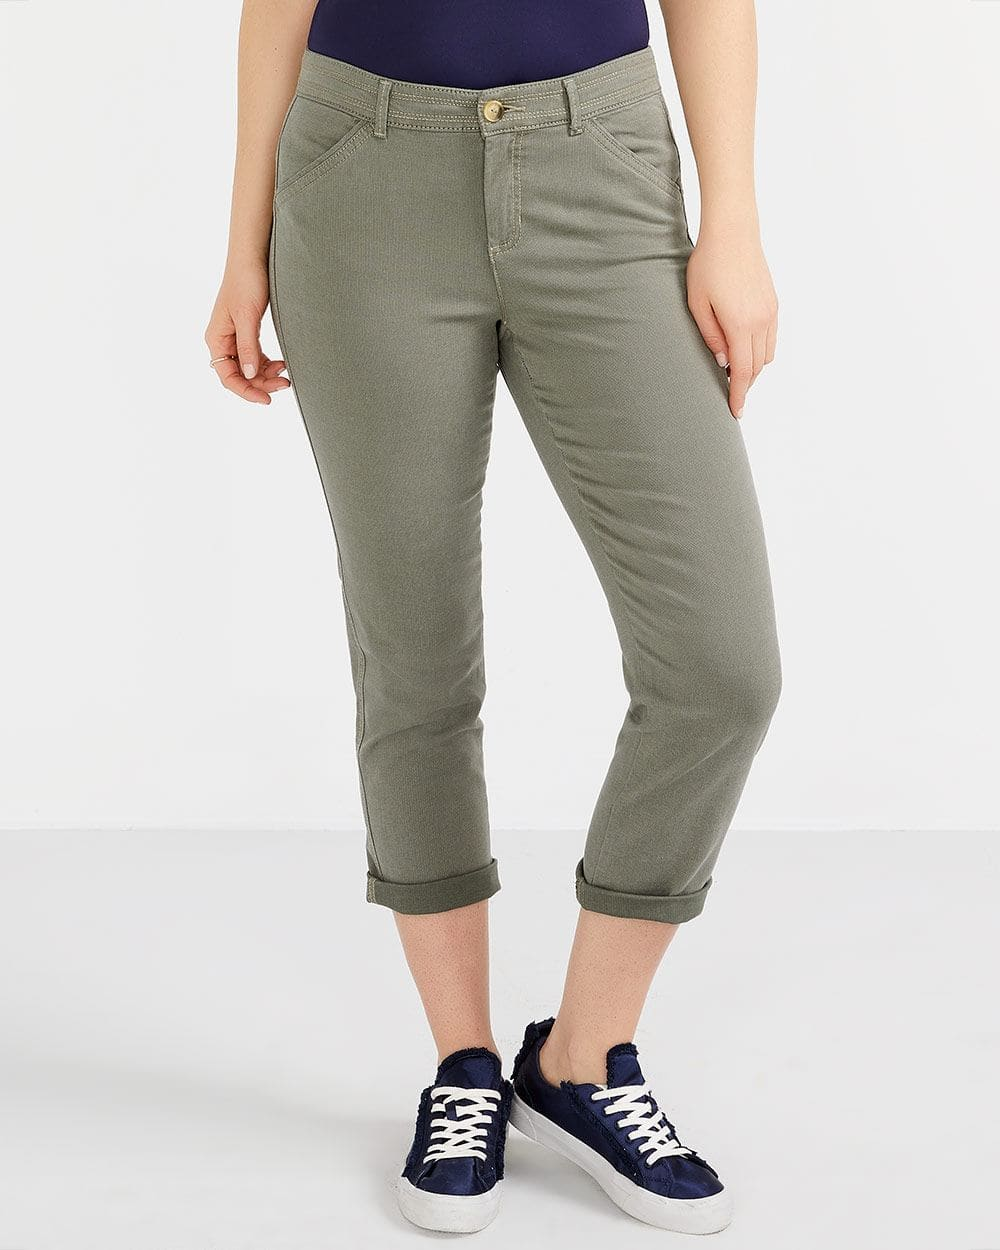 The Cropped Chino